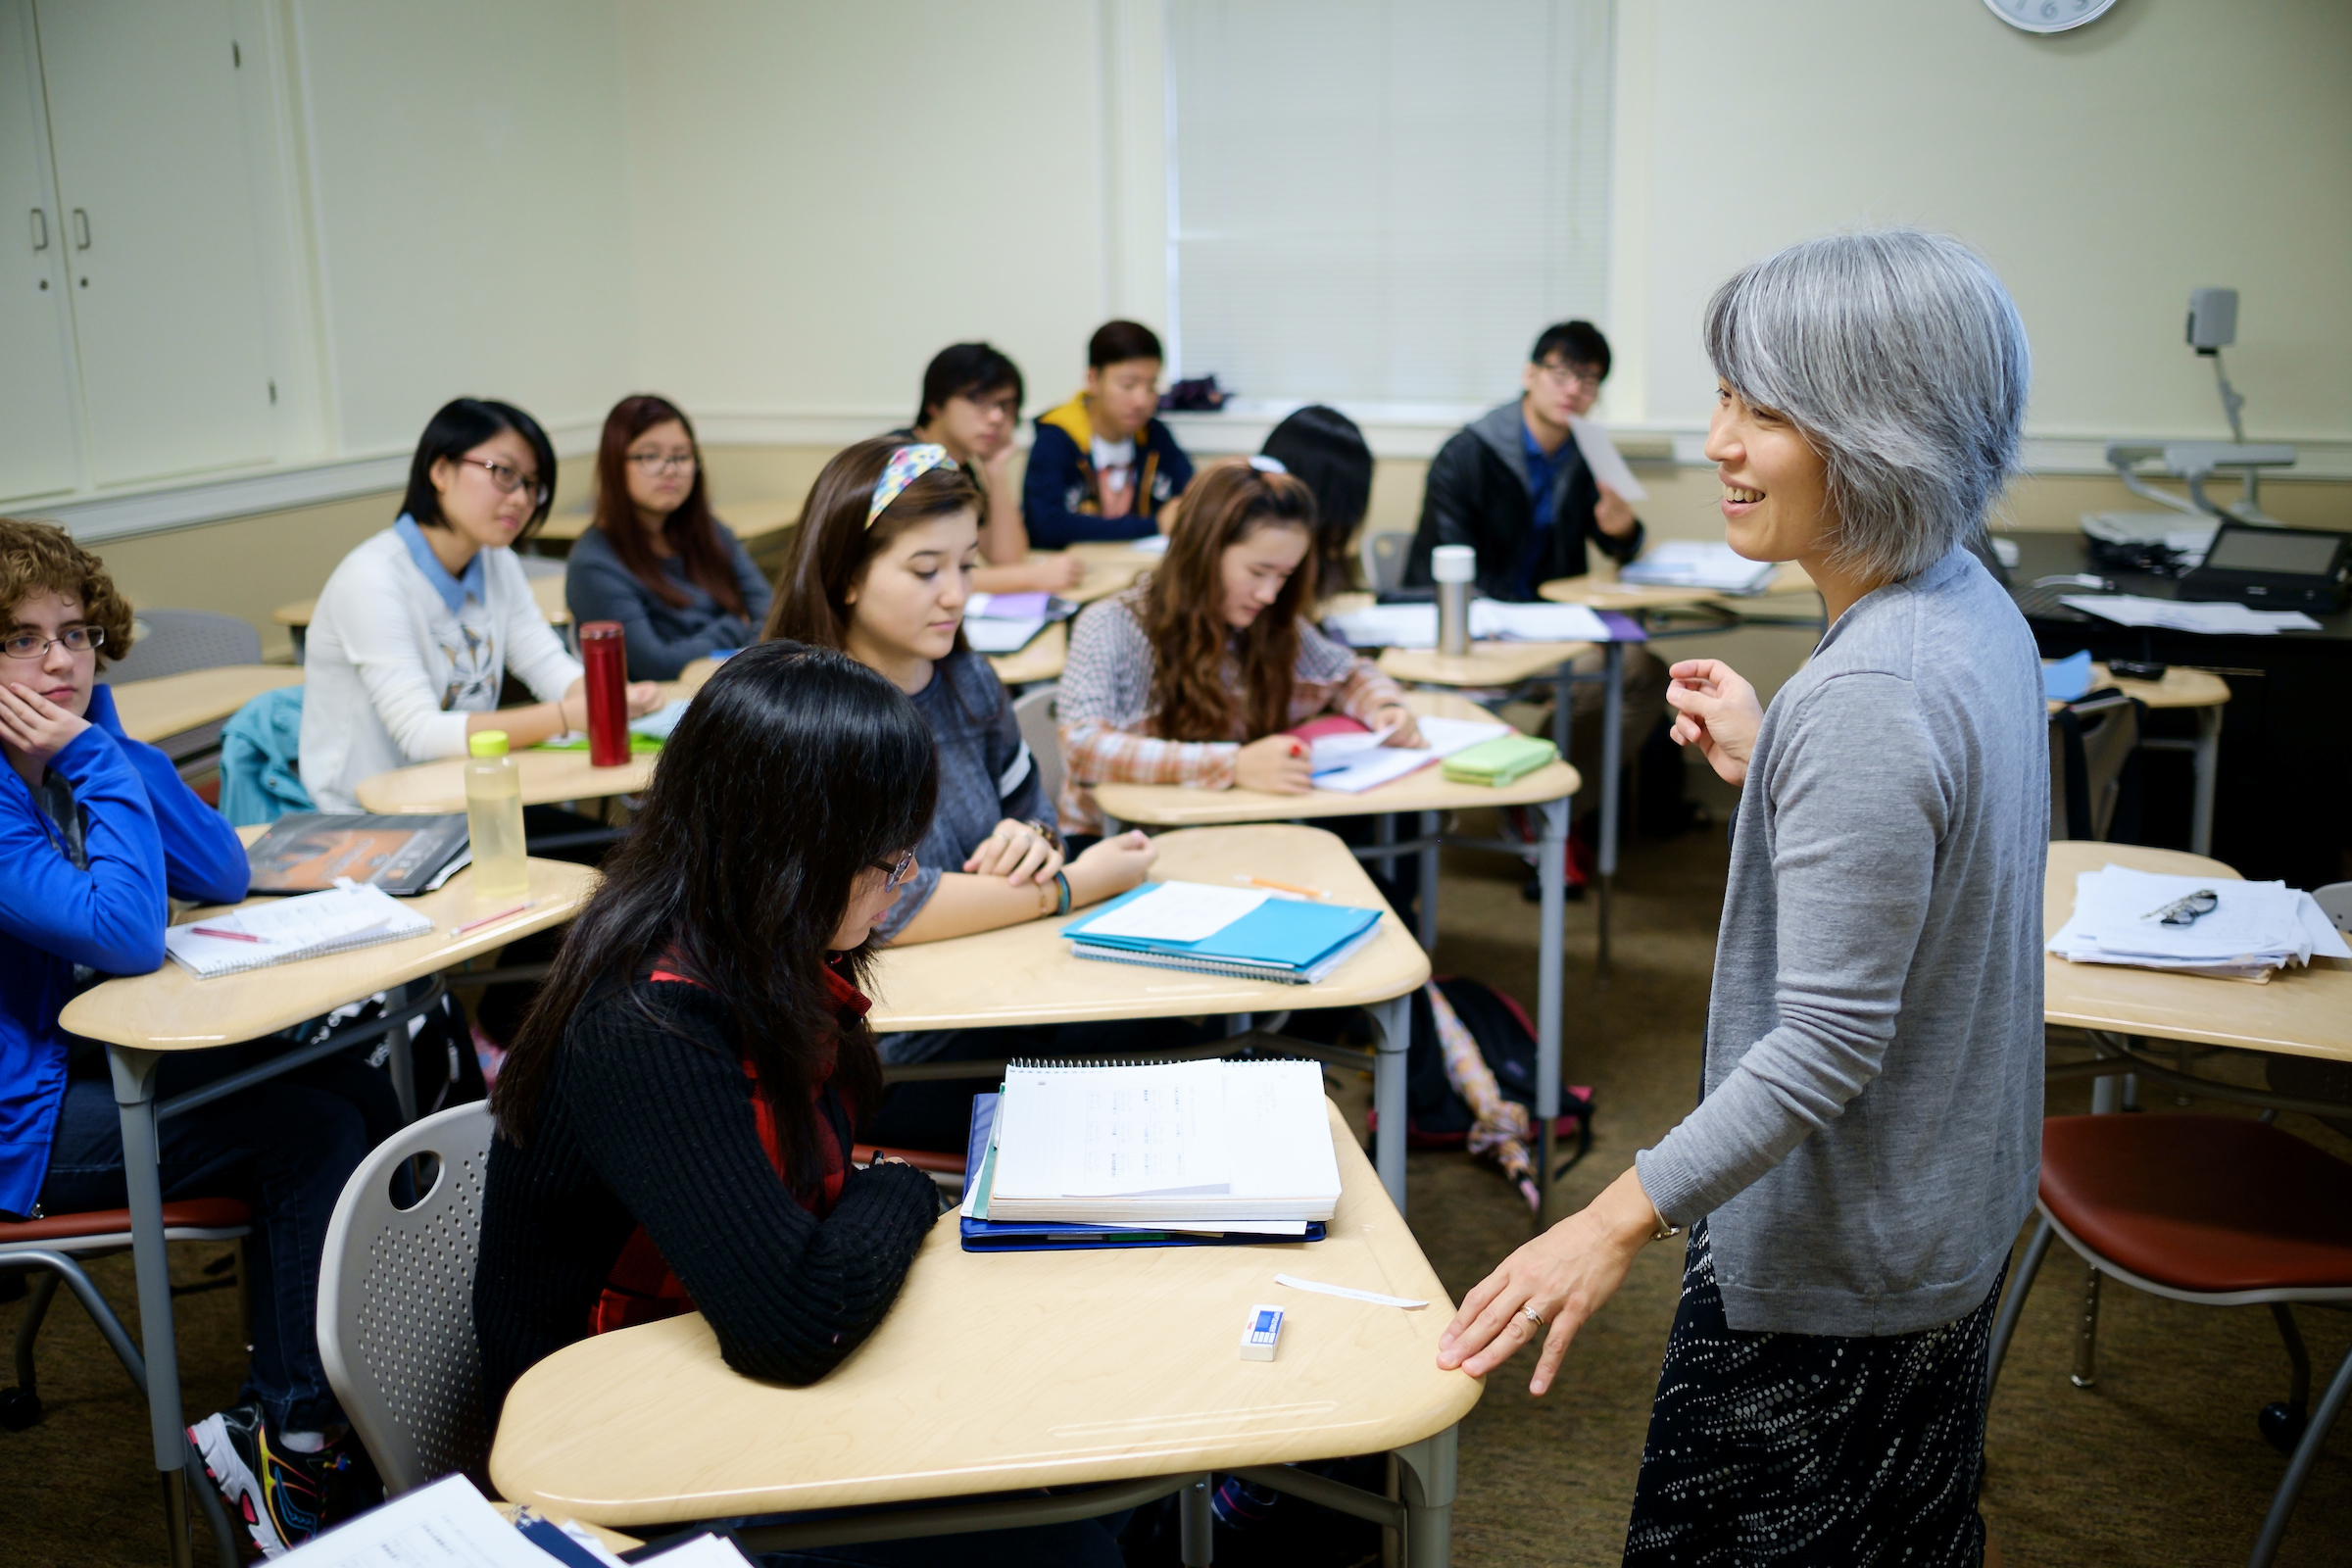 Wake Forest professor Yasuko Takata Rallings teaches her midlevel Japanese class in Carswell Hall on Monday, September 29, 2014.